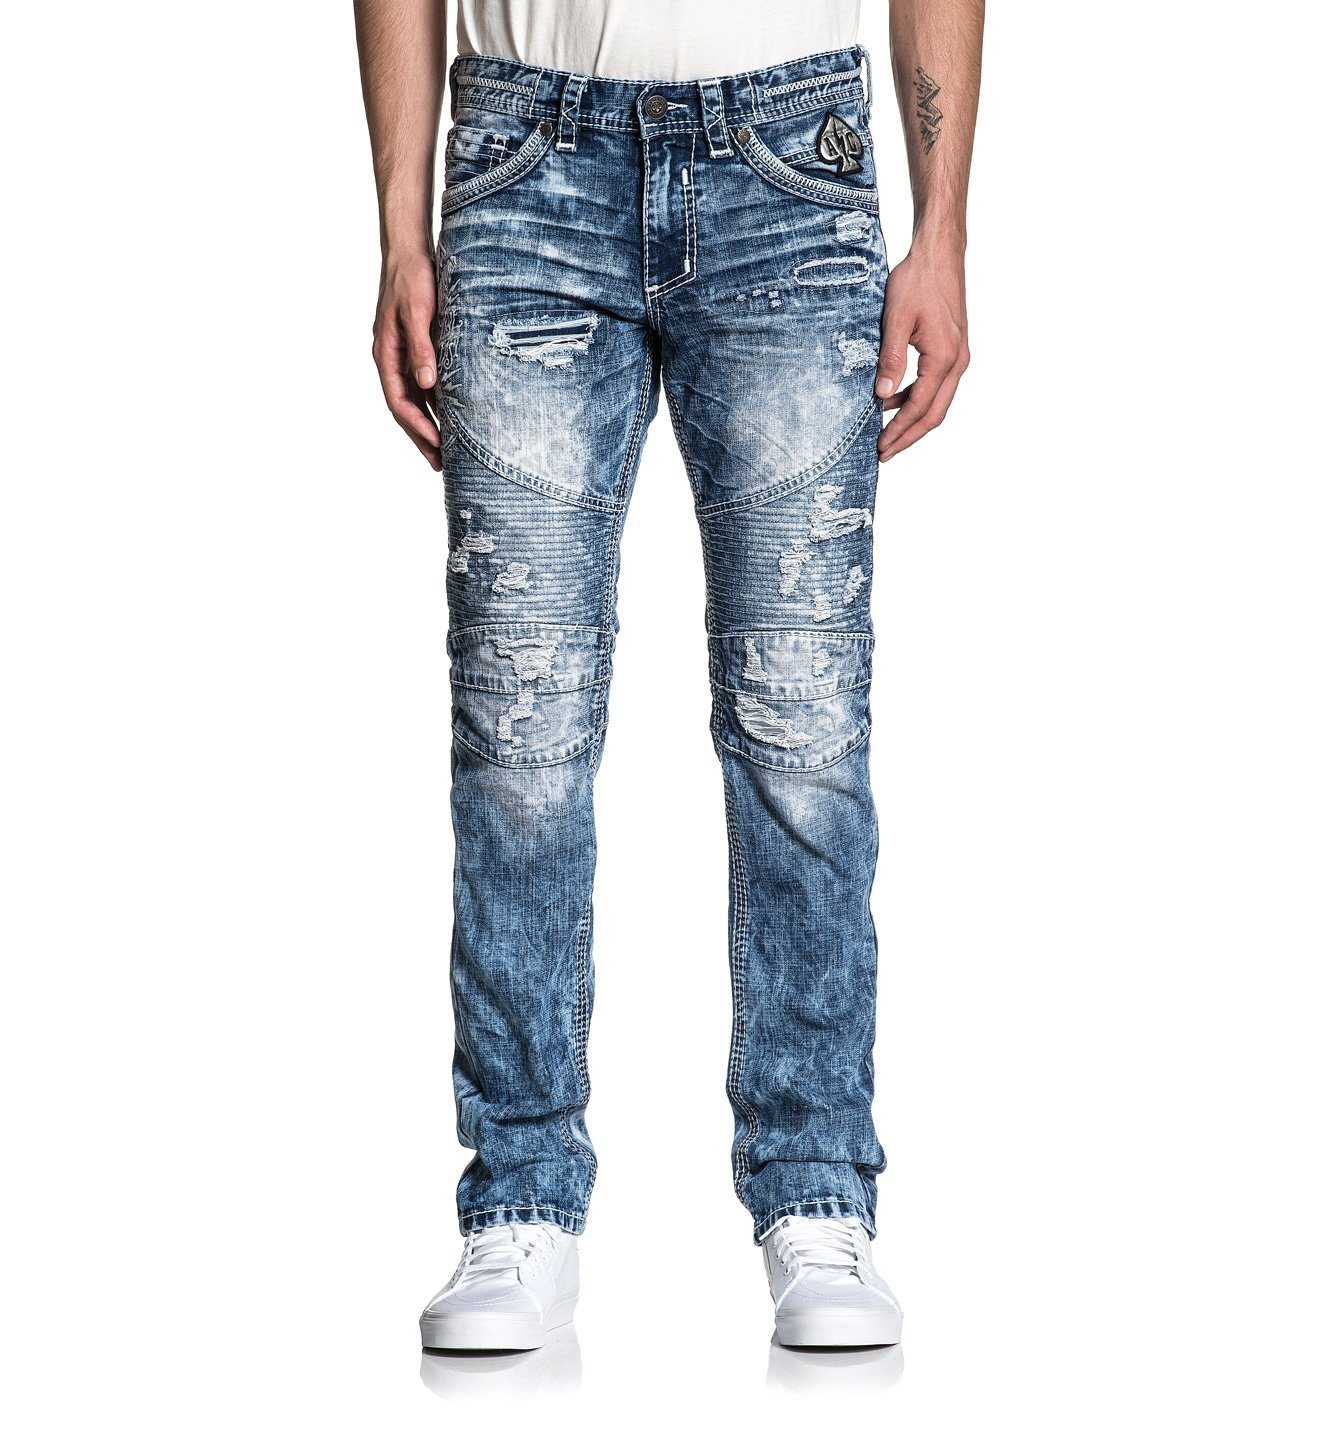 Mens Denim Bottoms - Gage Relent Fletch